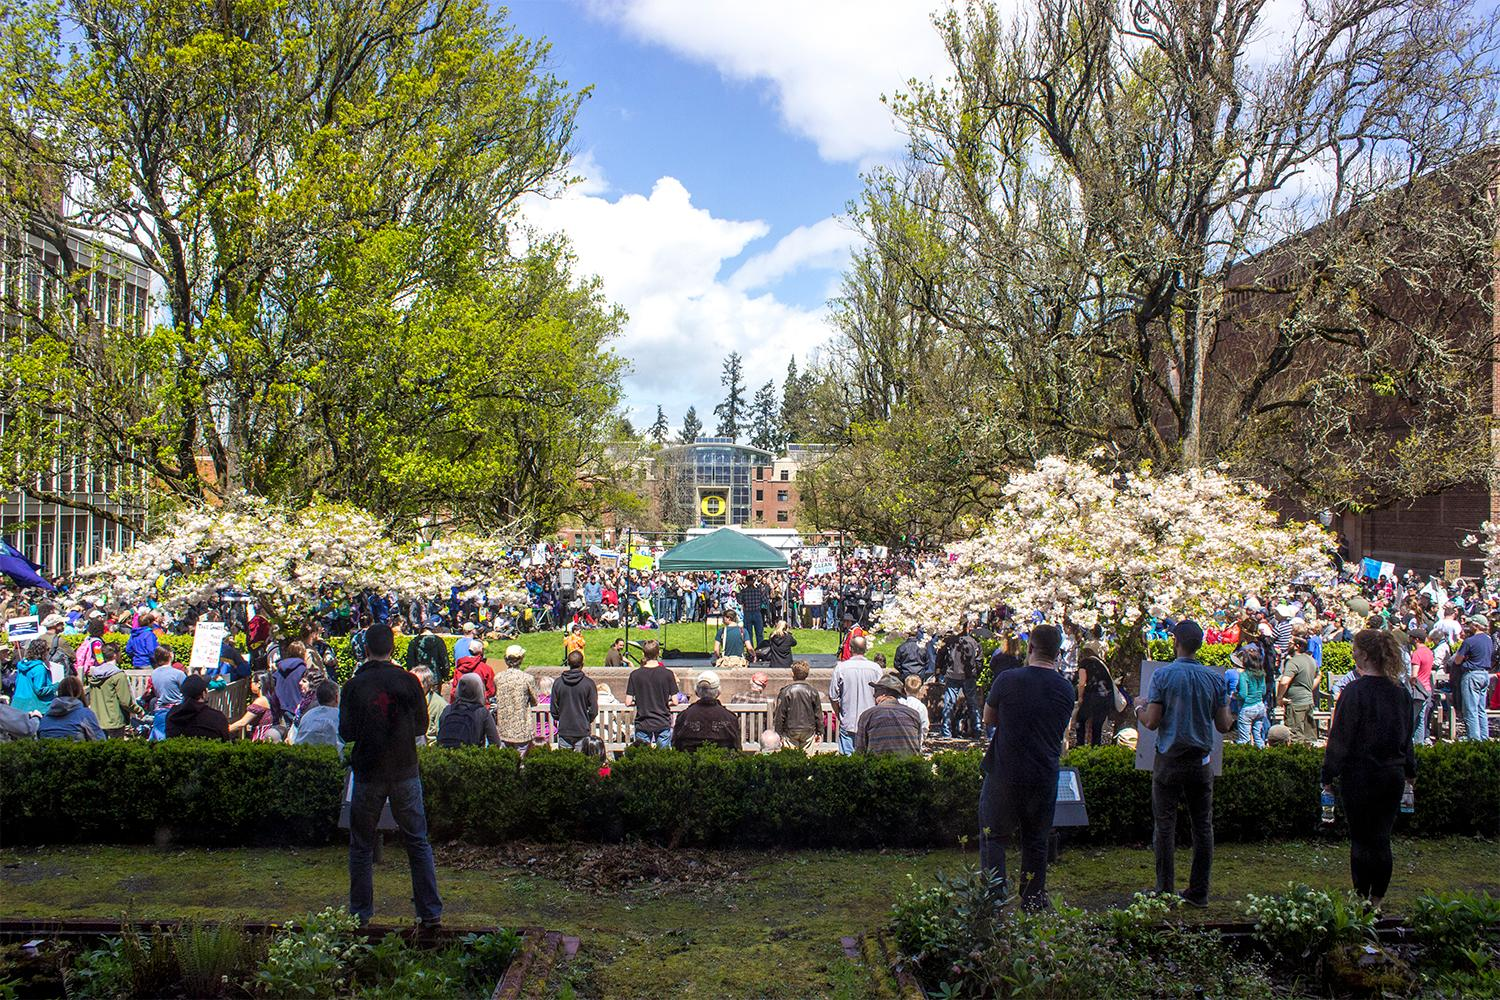 Hundreds of people gathered on the University of Oregon campus and marched to the Federal Court House on Earth Day, April 22, 2017. The crowd joined protests around the country against the Trump administration's proposed cuts to scientific research and the Environmental Protection Agency. Photo by Amanda Butt